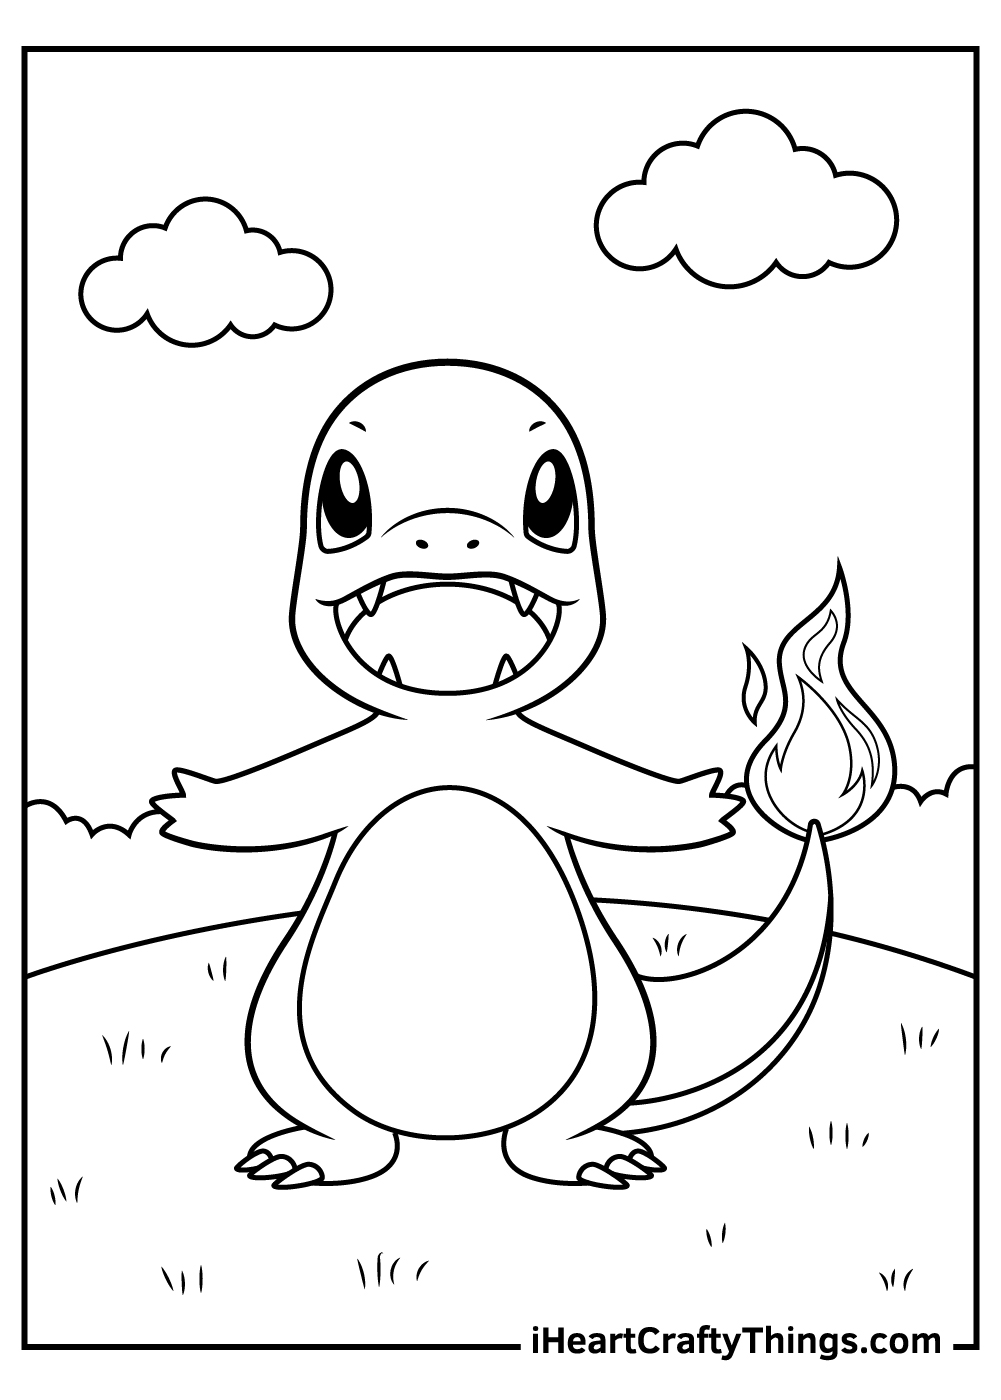 chibi charmander coloring pages free to print out